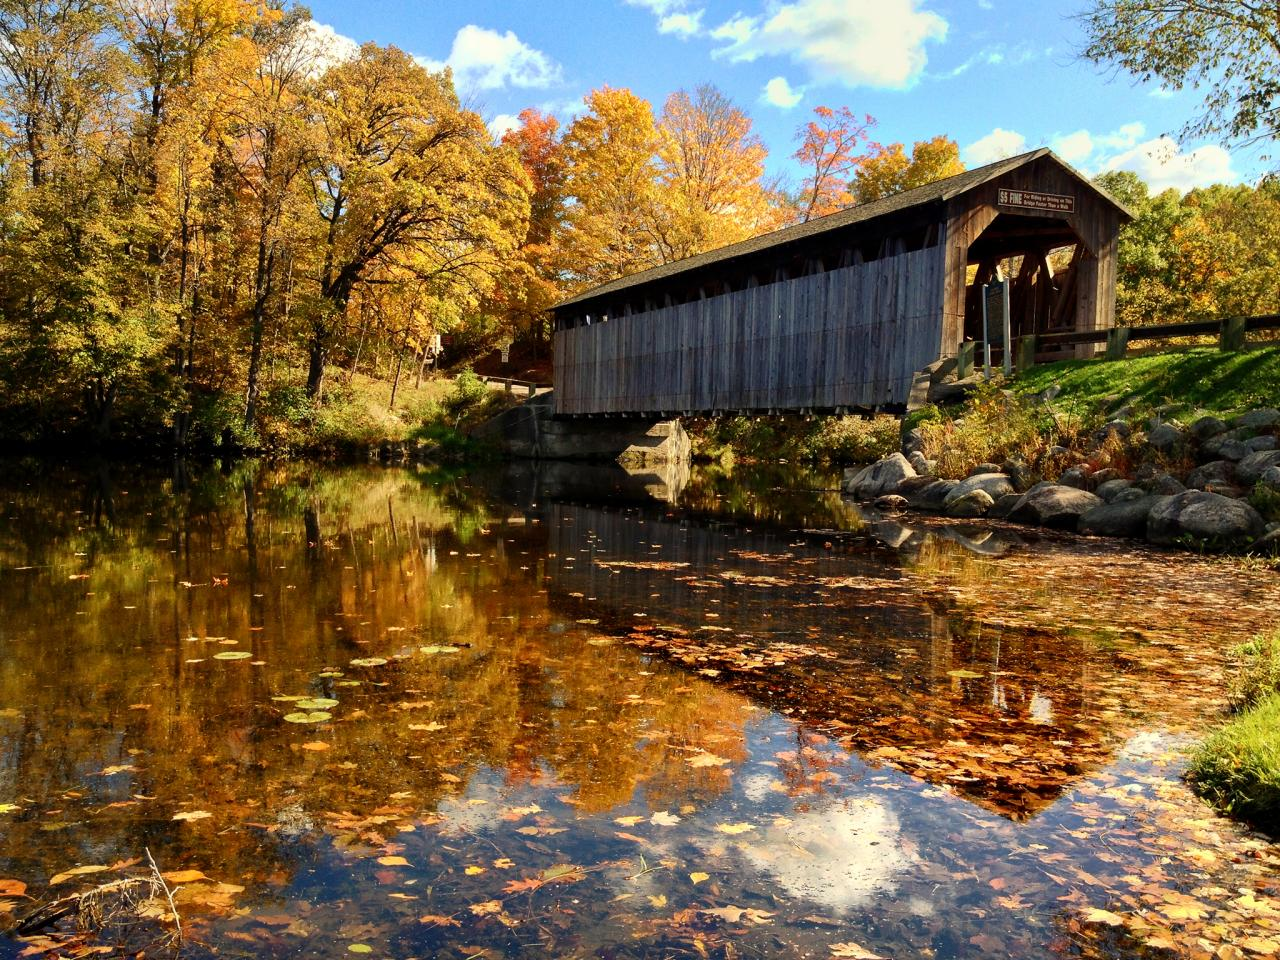 fall-road-trips-2015-michigan-covered-bridge-jpg-rend-tccom-1280-960